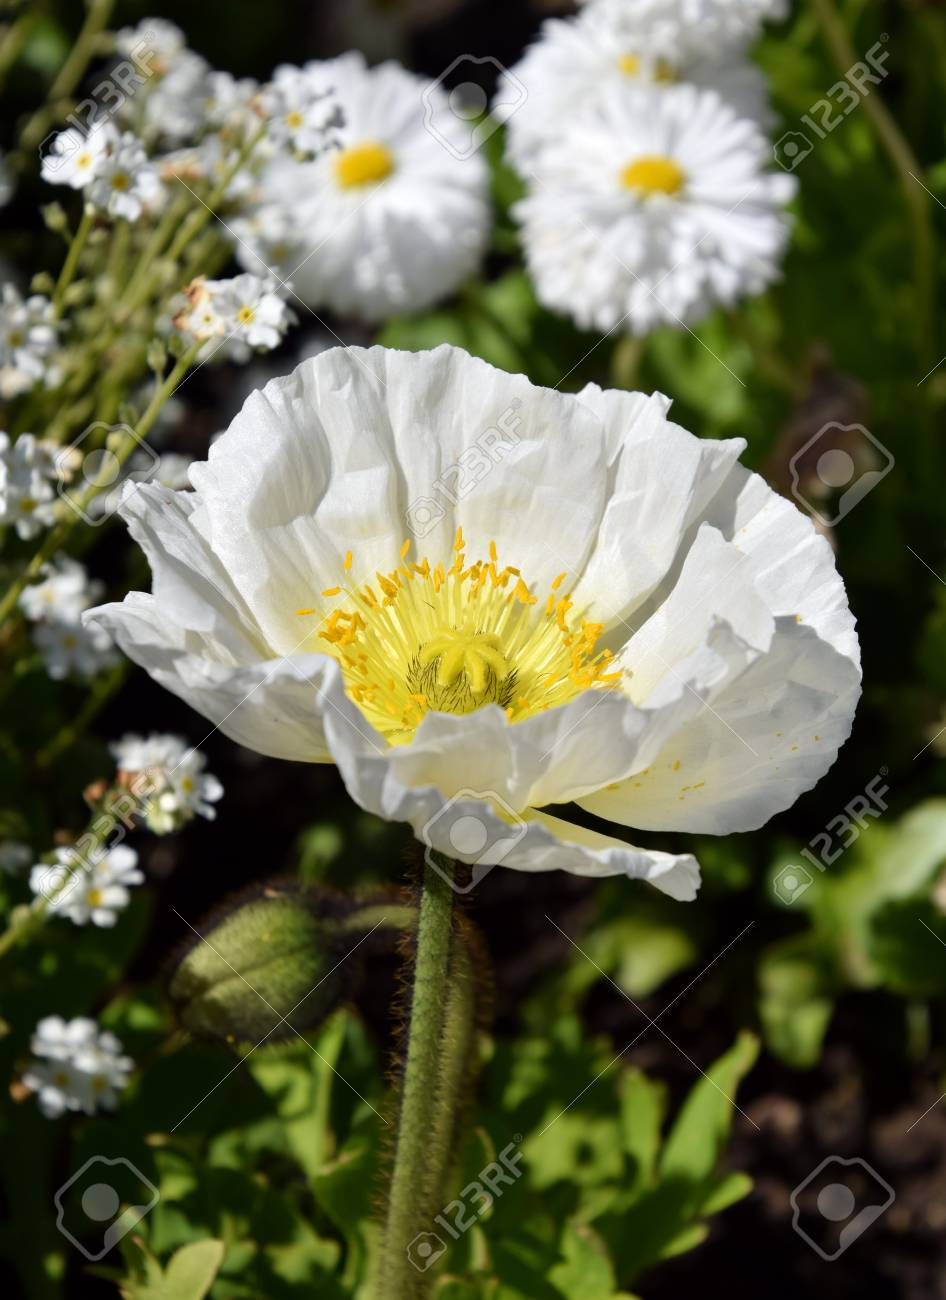 Arctomecon merriamii white poppy flower stock photo picture and arctomecon merriamii white poppy flower stock photo 78130608 mightylinksfo